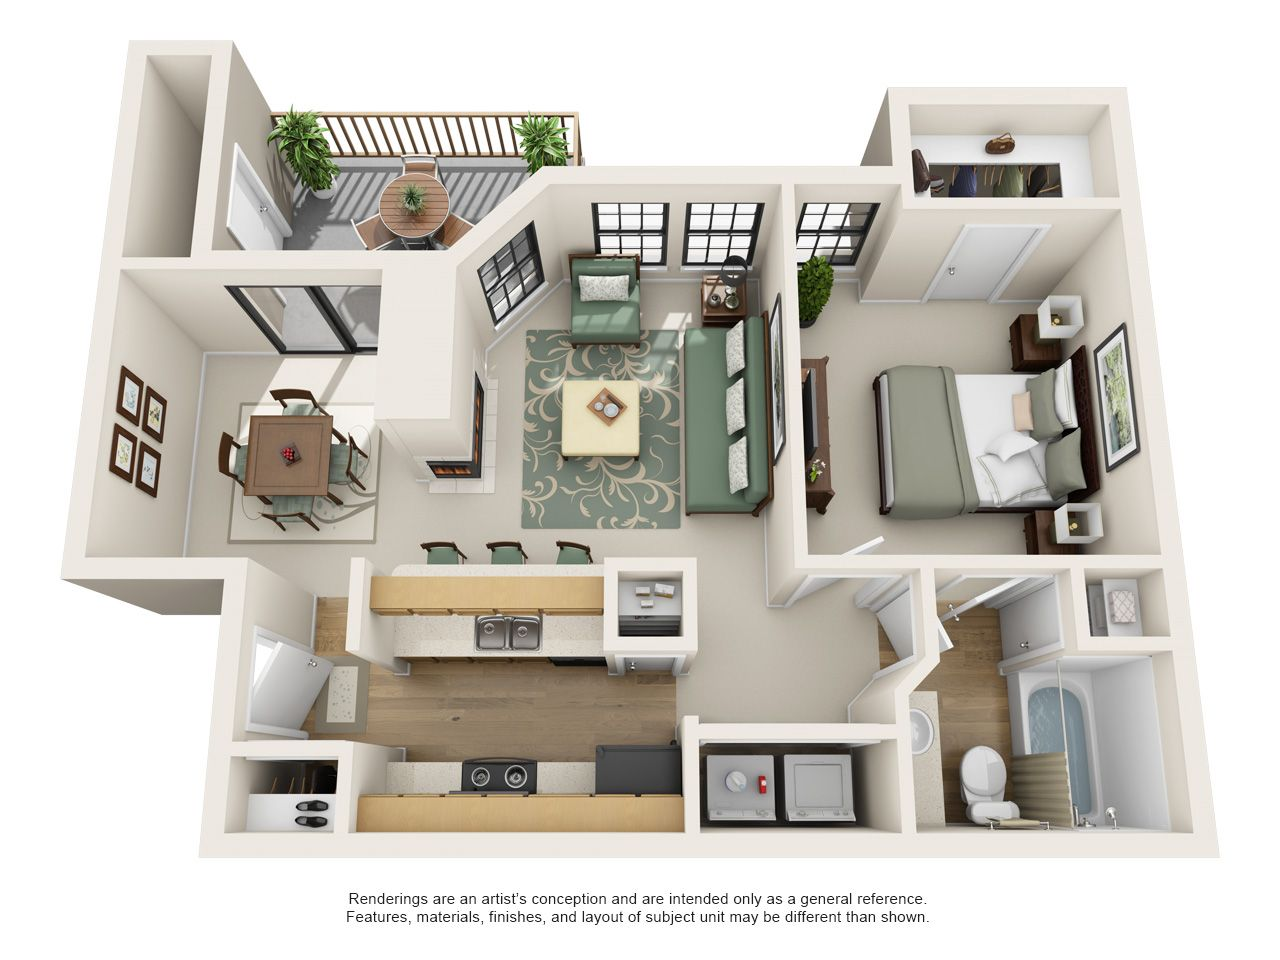 1 And 2 Bedroom Apartments In Carrollton Tx Layouts Steadfast Apartment Renting Rental Texas D Sims House Plans Apartment Layout House Floor Plans